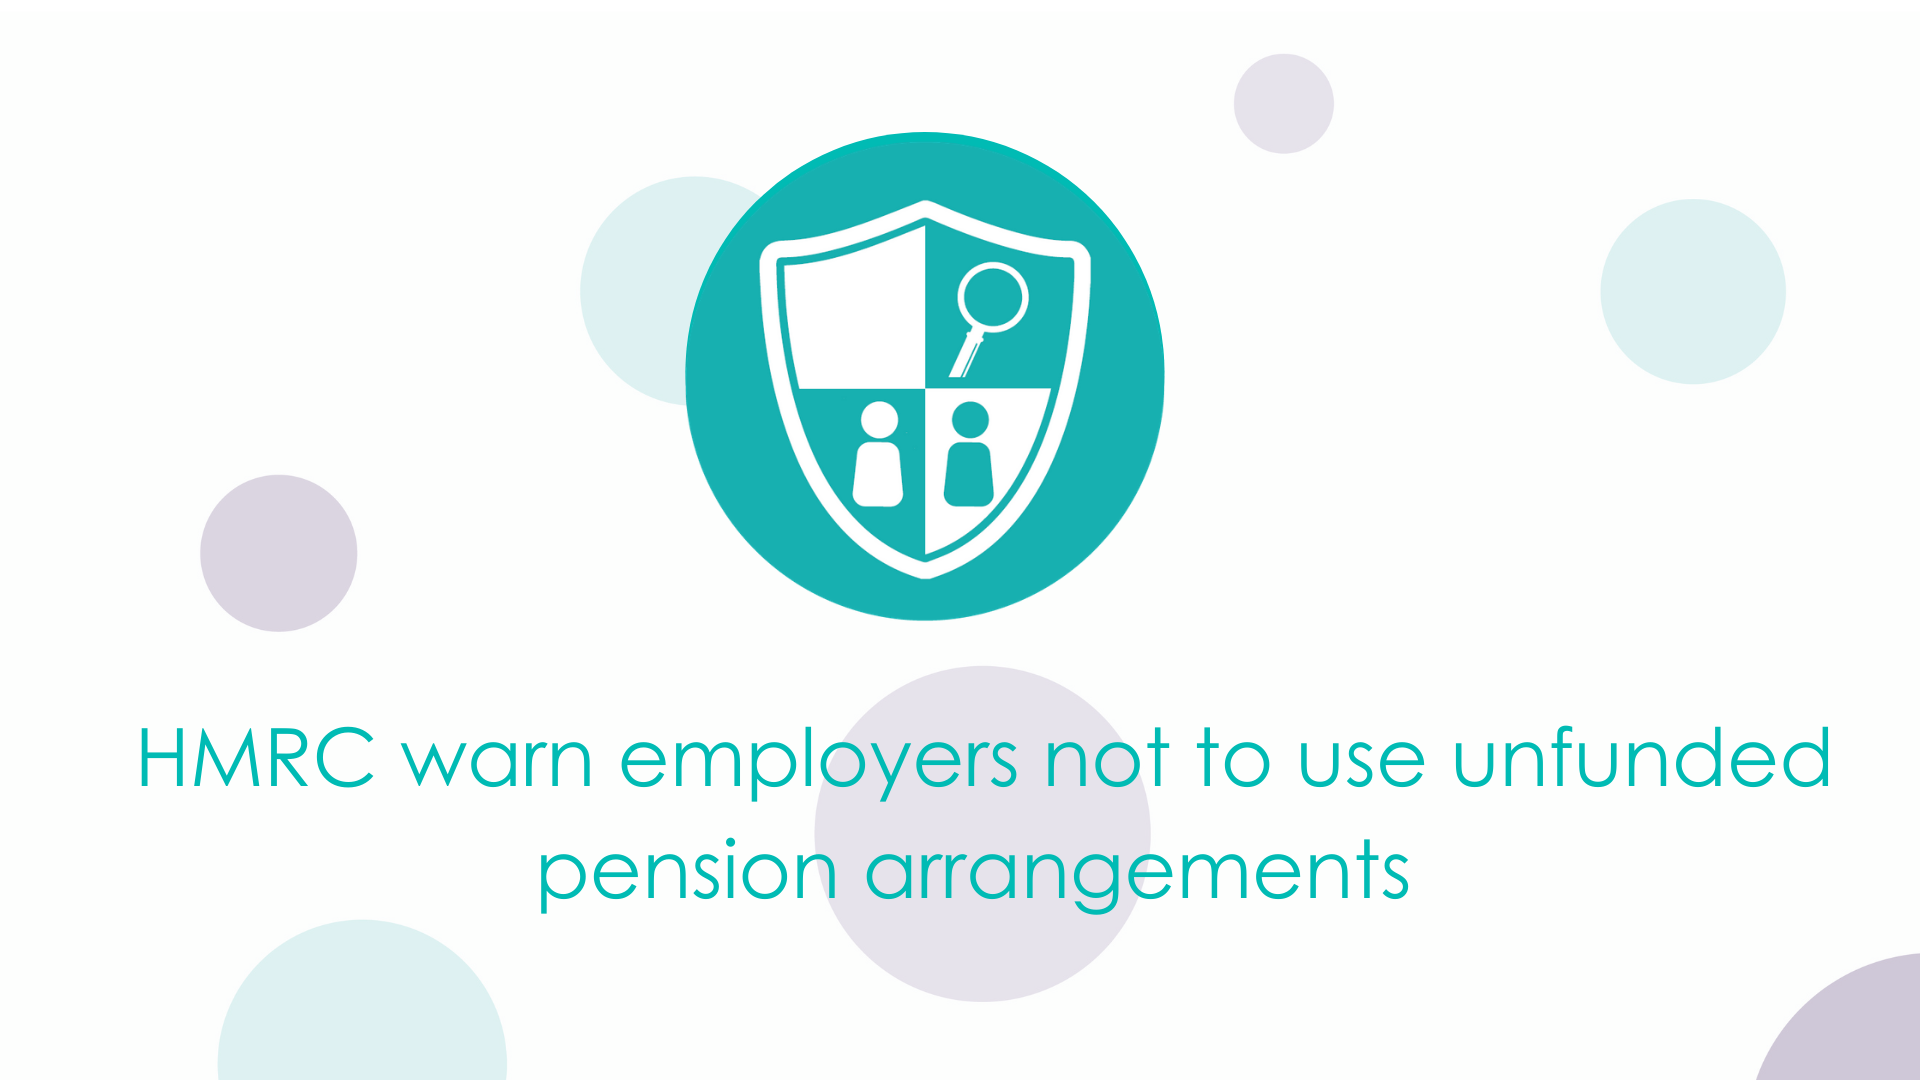 HMRC warn employers not to use unfunded pension arrangements